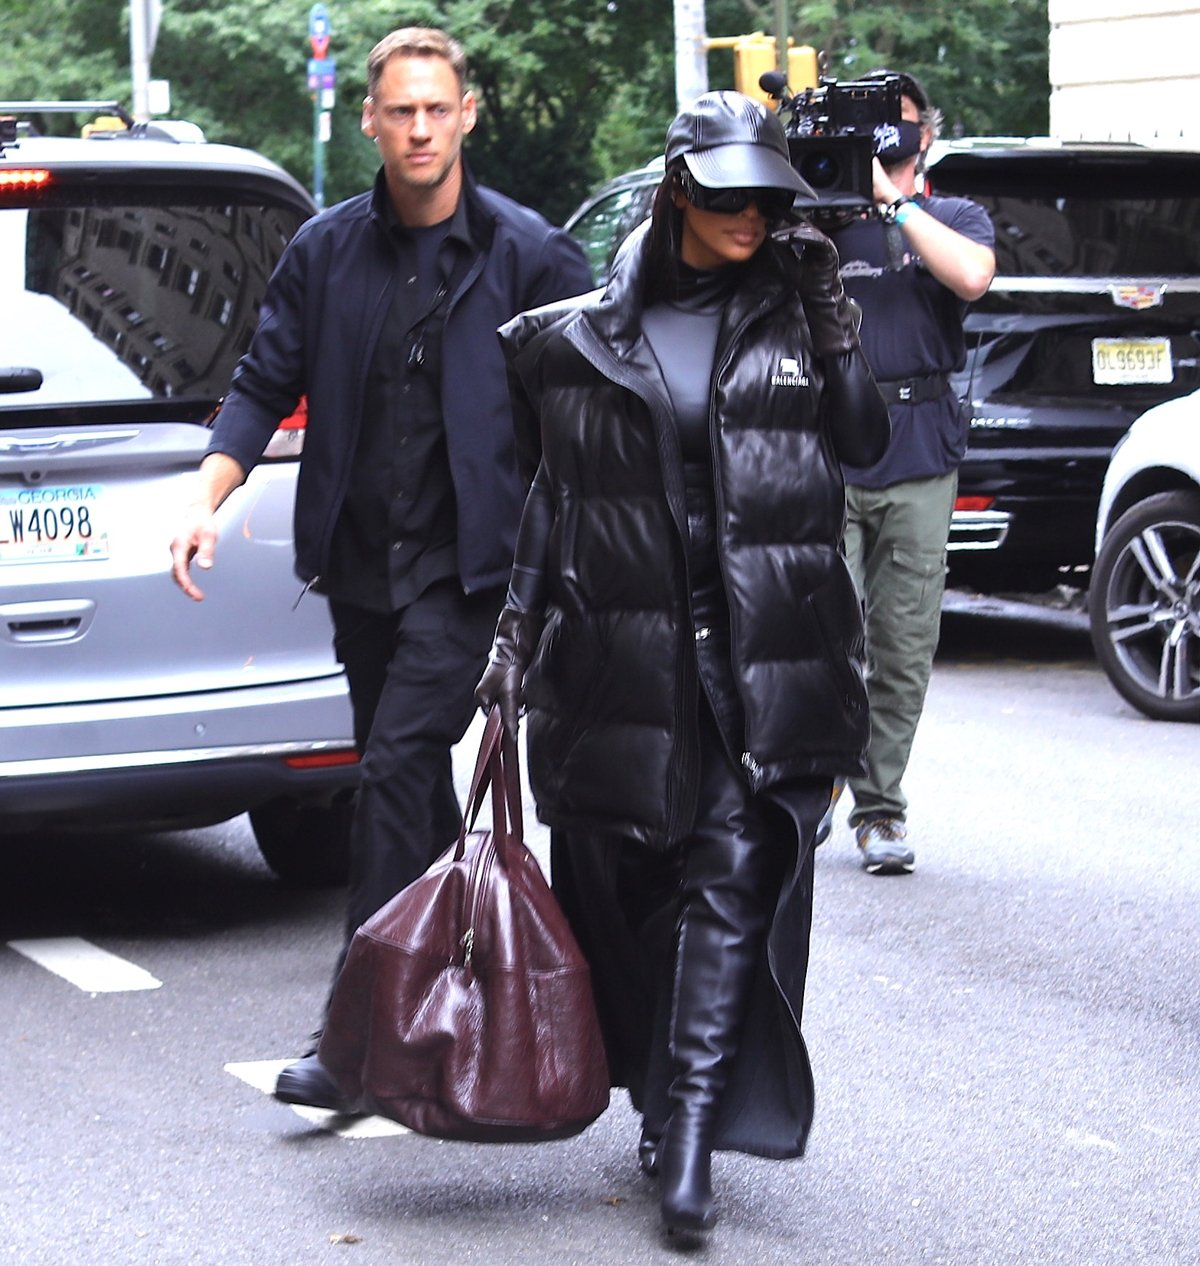 Kim Kardashian filming her new Hulu show with her tv crew after leaving her luxury hotel in New York City